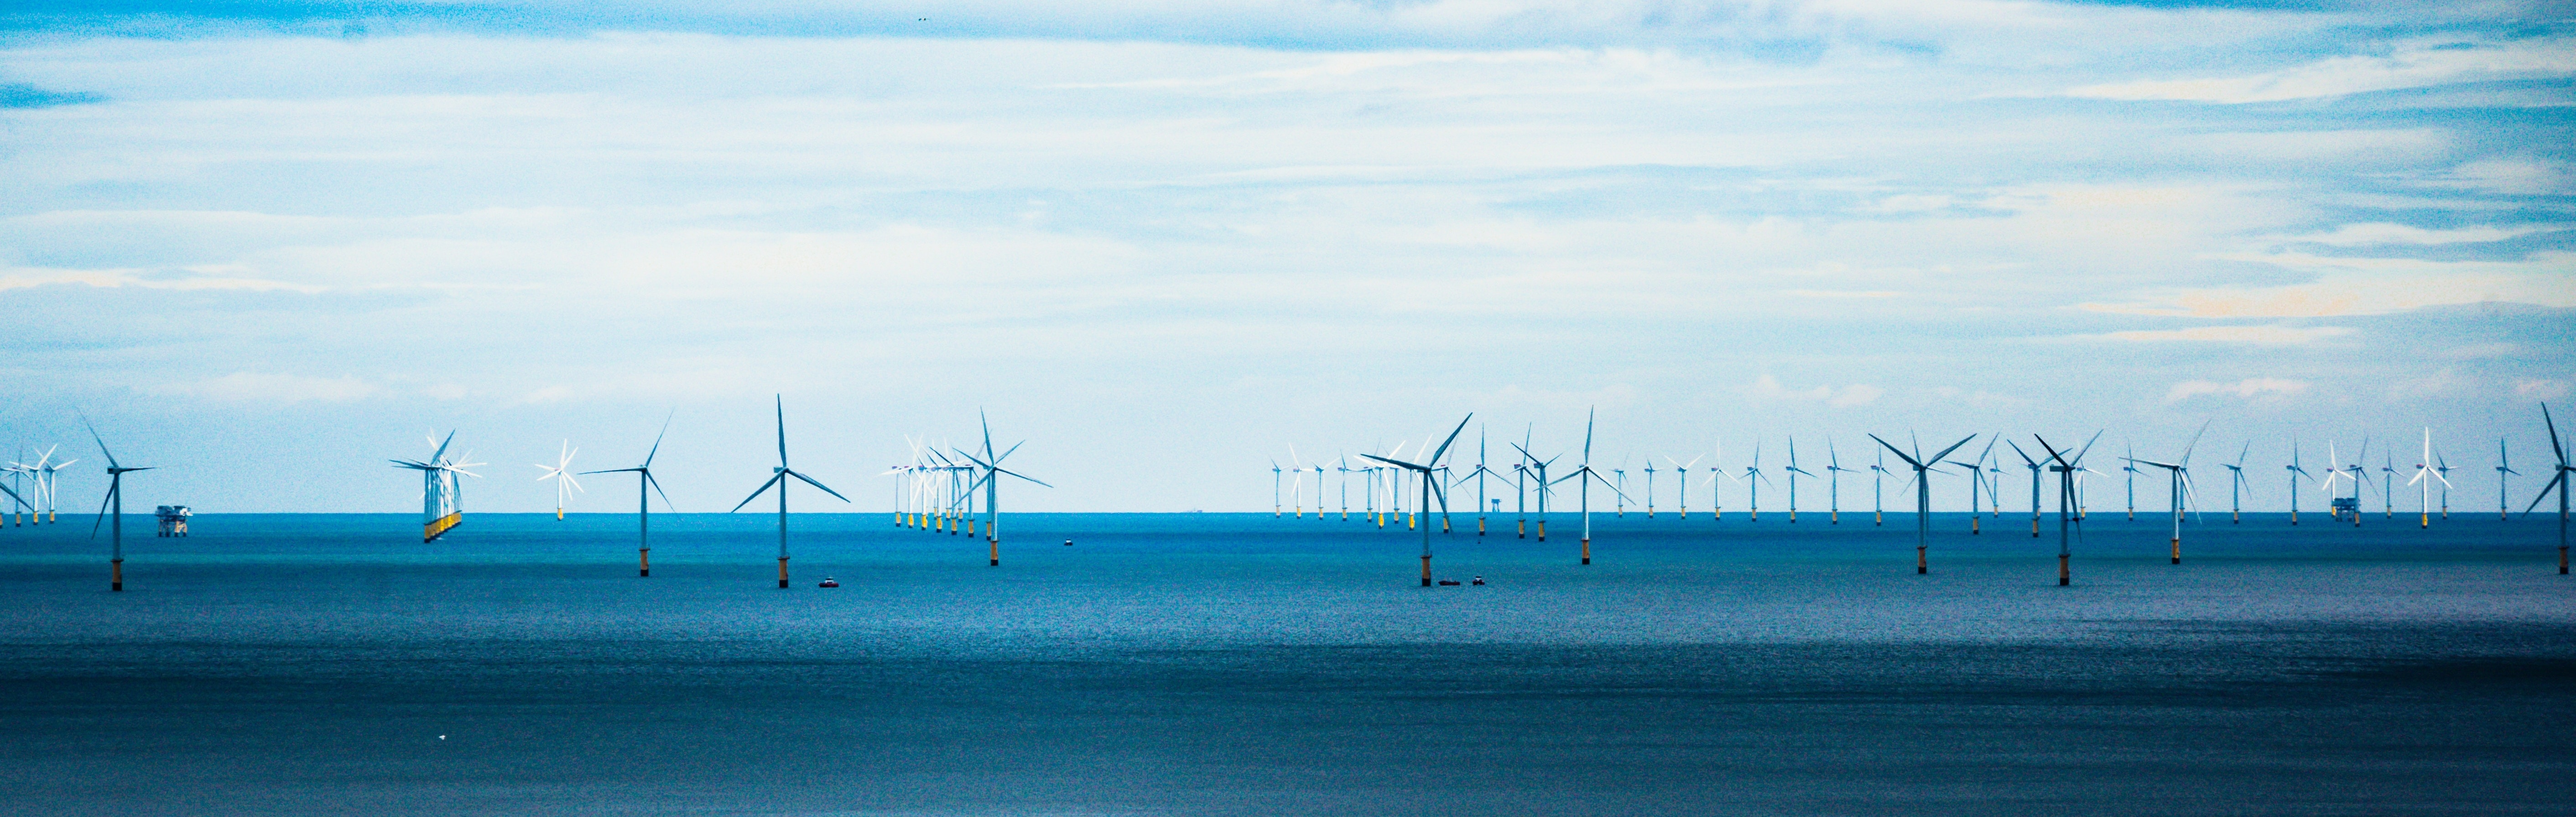 U.S. Offshore Wind Gaining Momentum by the Gigawatt